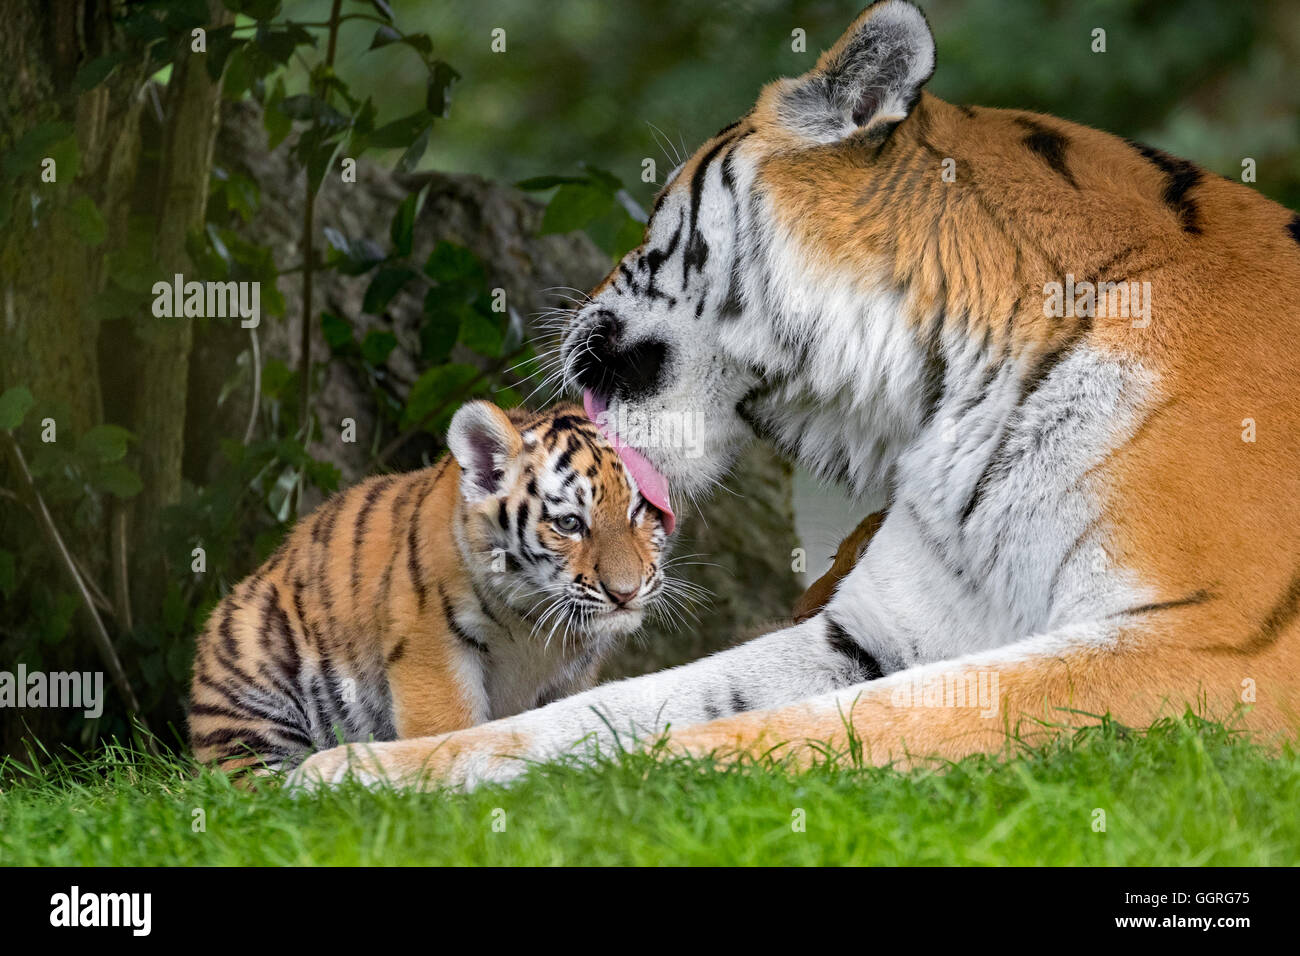 Amur tiger and her 10-week-old cub - Stock Image